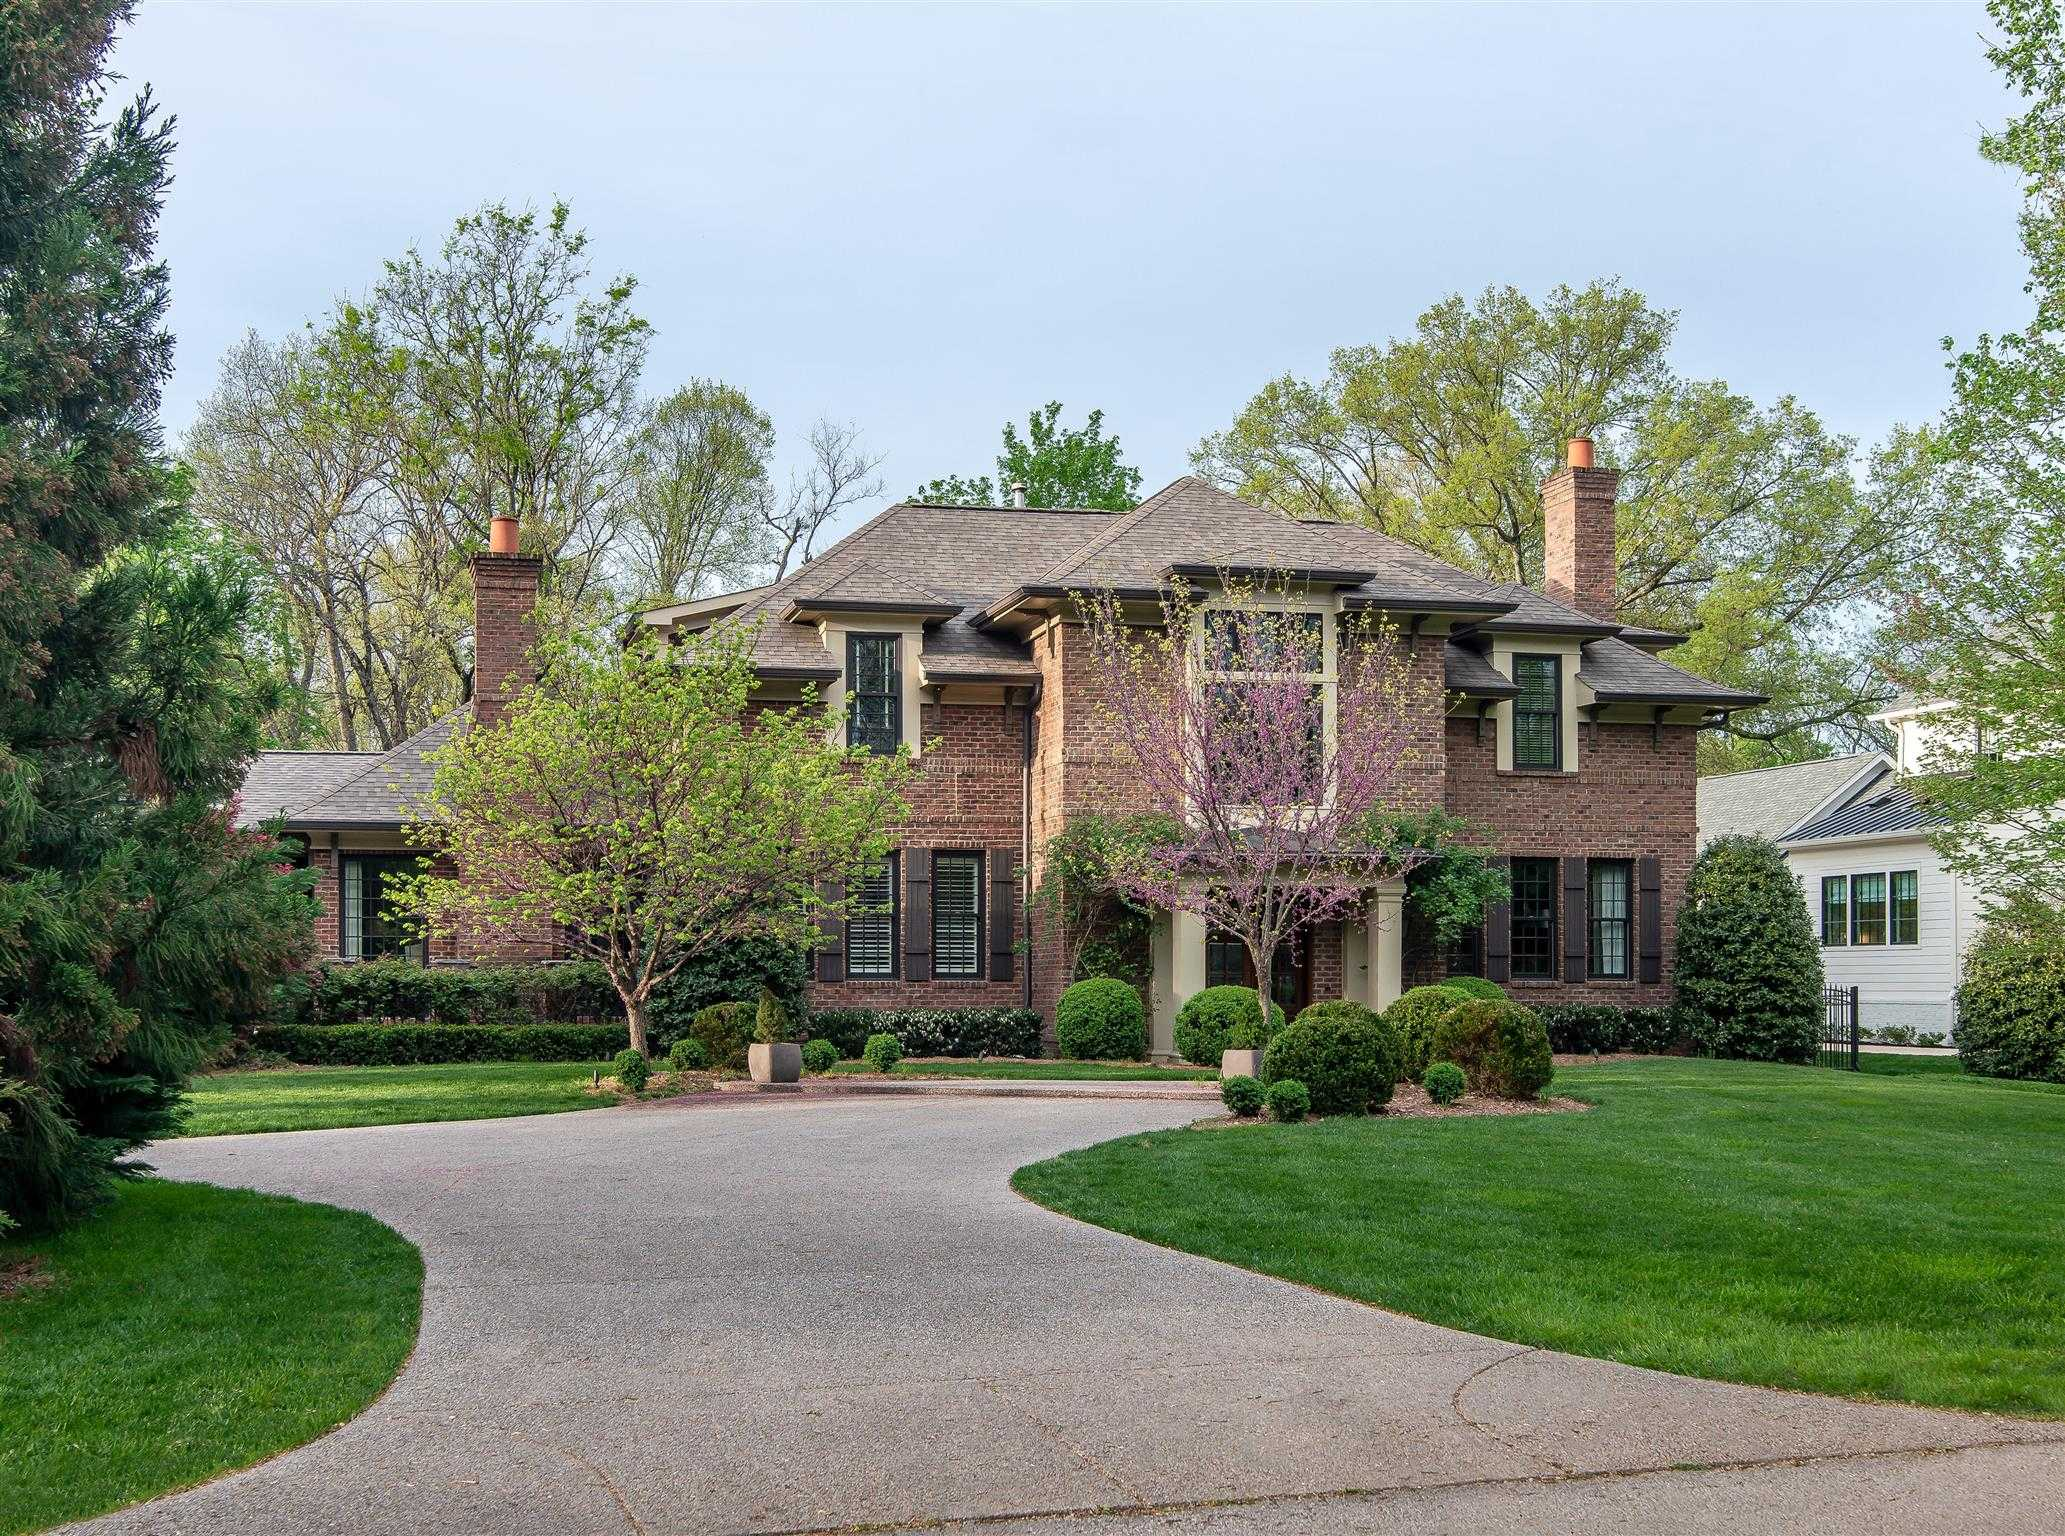 $2,495,000 - 6Br/6Ba -  for Sale in Stokes Tract, Nashville